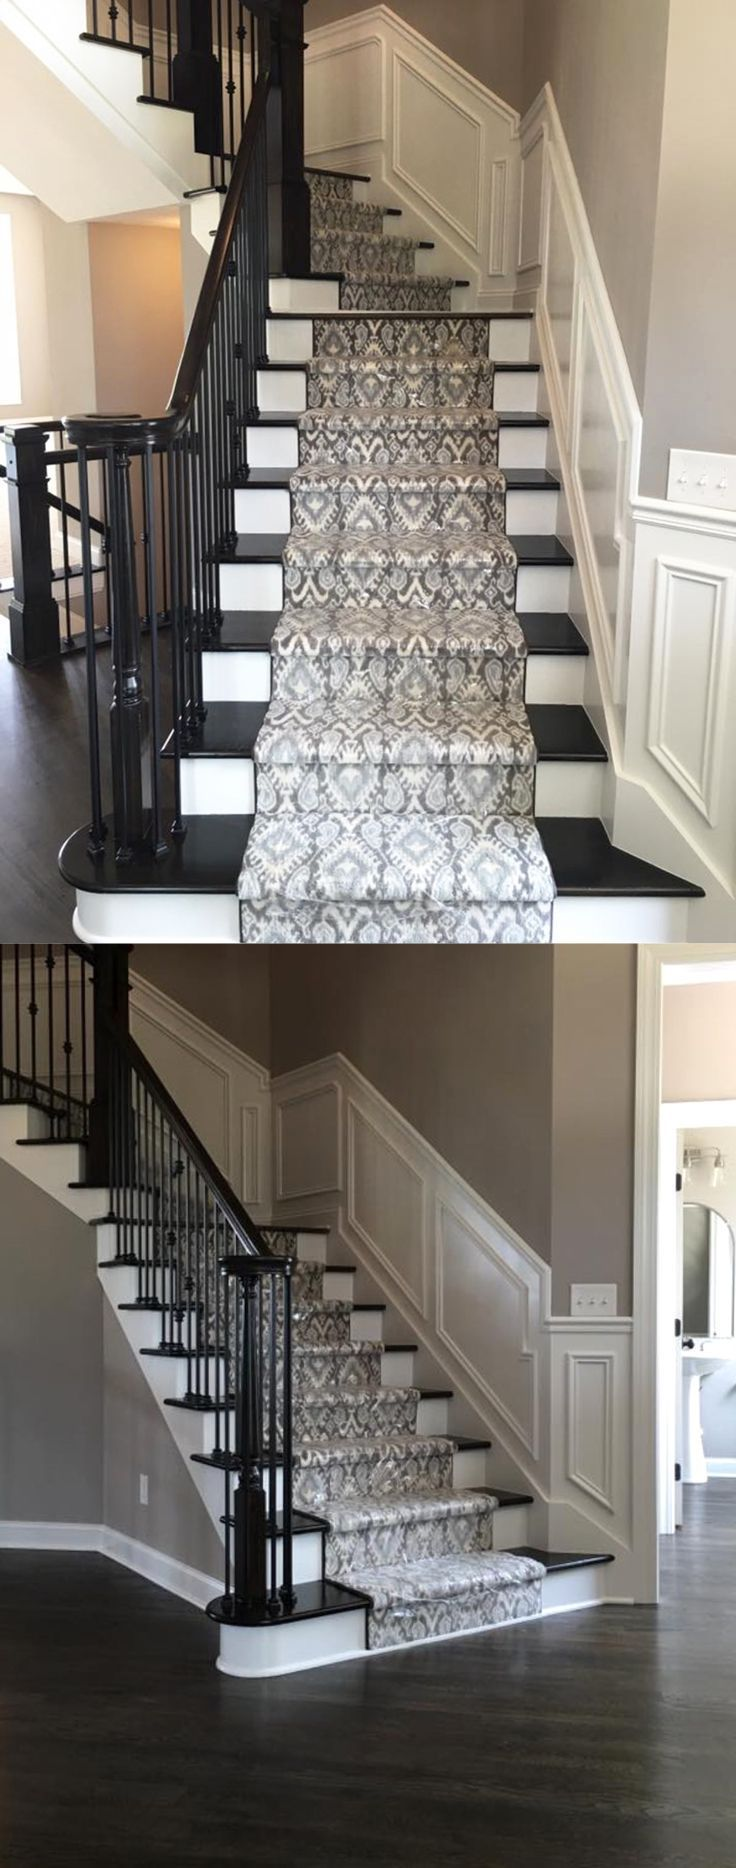 Best 36 Best Stair Carpet Ideas Images On Pinterest Stair 400 x 300